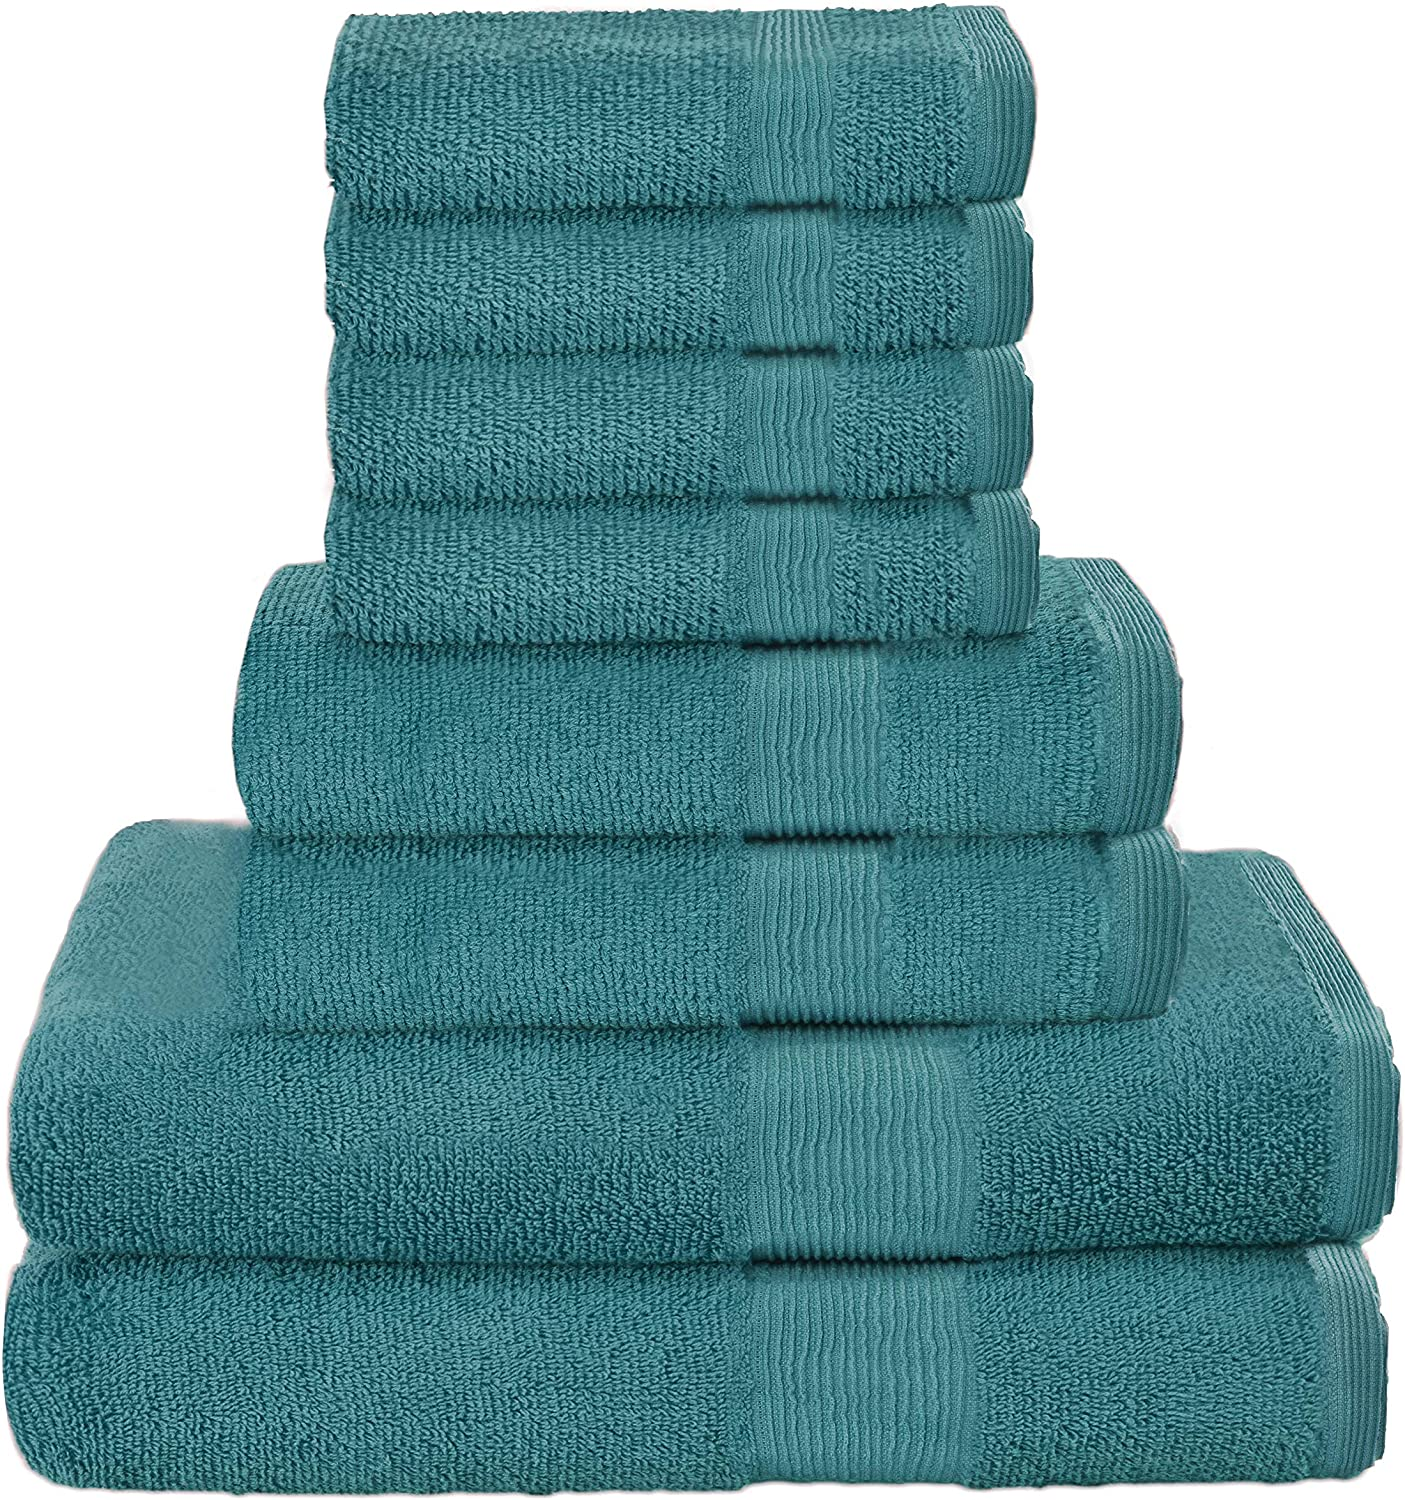 Elvana Home 8 Piece Towel Set 100% Ring Spun Cotton, 2 Bath Towels 27x54, 2 Hand Towels 16x28 and 4 Washcloths 13x13 - Ultra Soft Highly Absorbent Machine Washable Hotel Spa Quality - Teal